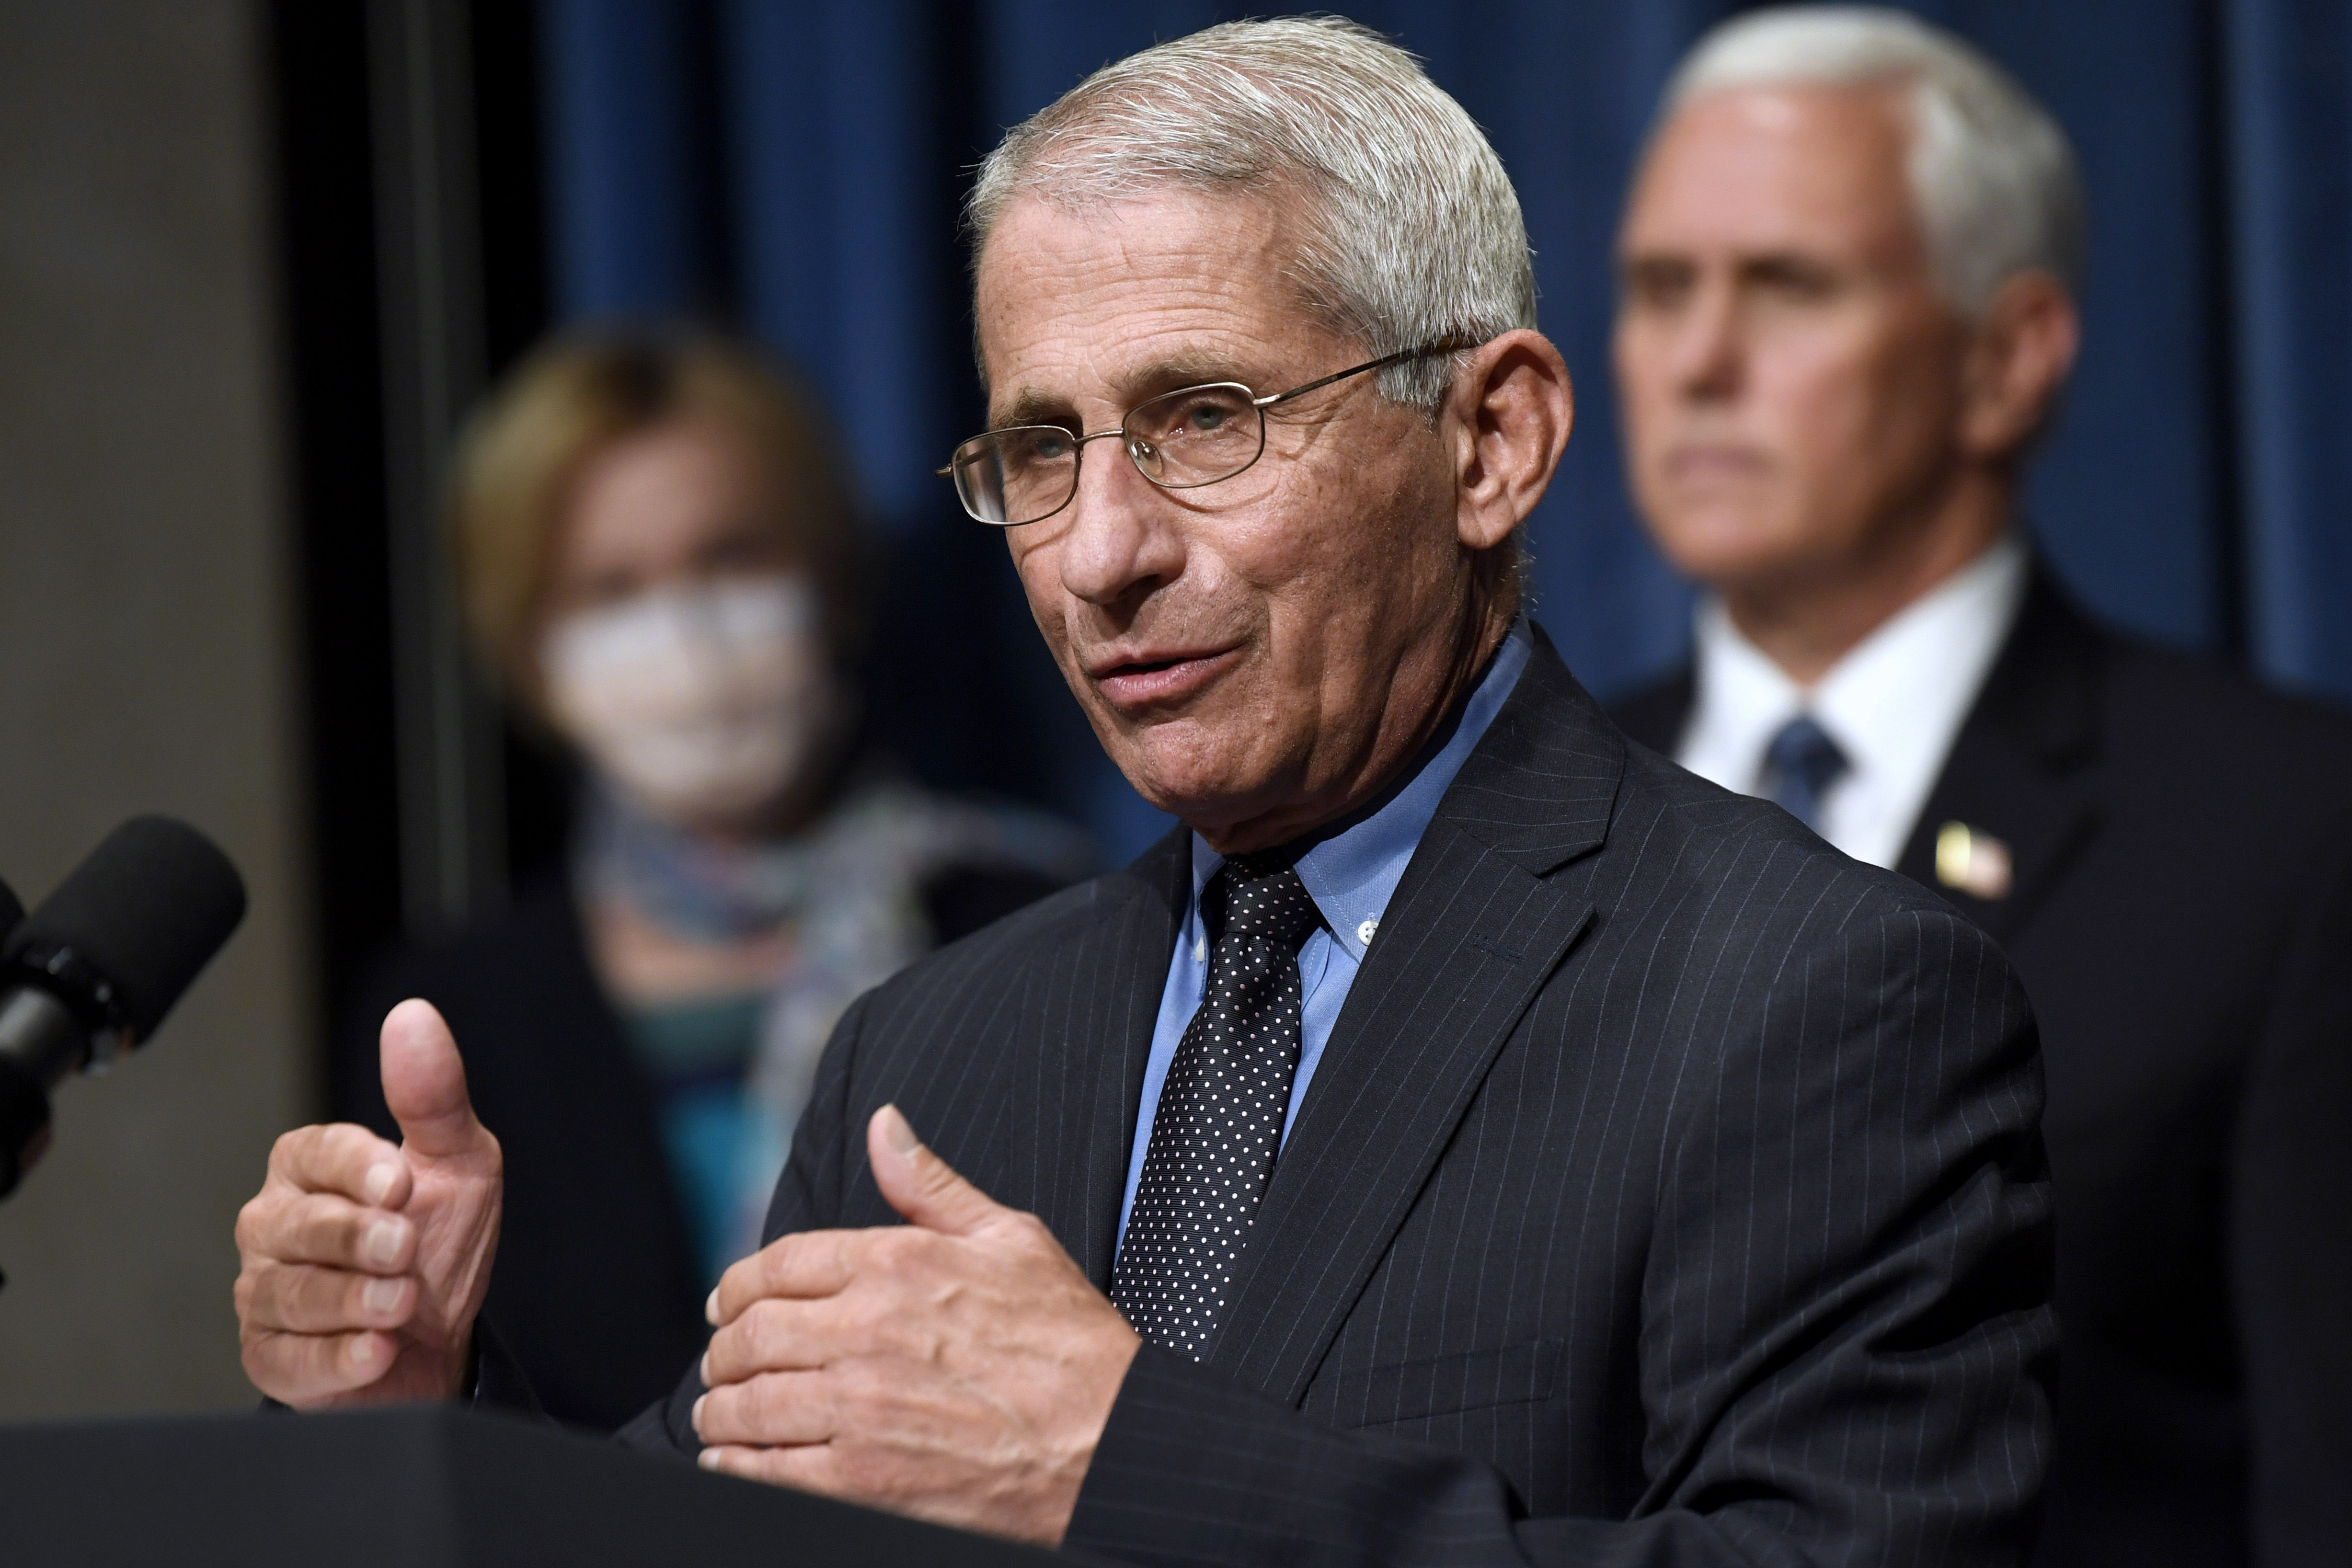 Director of the National Institute of Allergy and Infectious Diseases Dr. Anthony Fauci, center, speaks as Vice President Mike Pence, right, and Dr. Deborah Birx, White House coronavirus response coordinator, left, listen during a news conference with members of the Coronavirus task force at the Department of Health and Human Services in Washington on June 26, 2020.